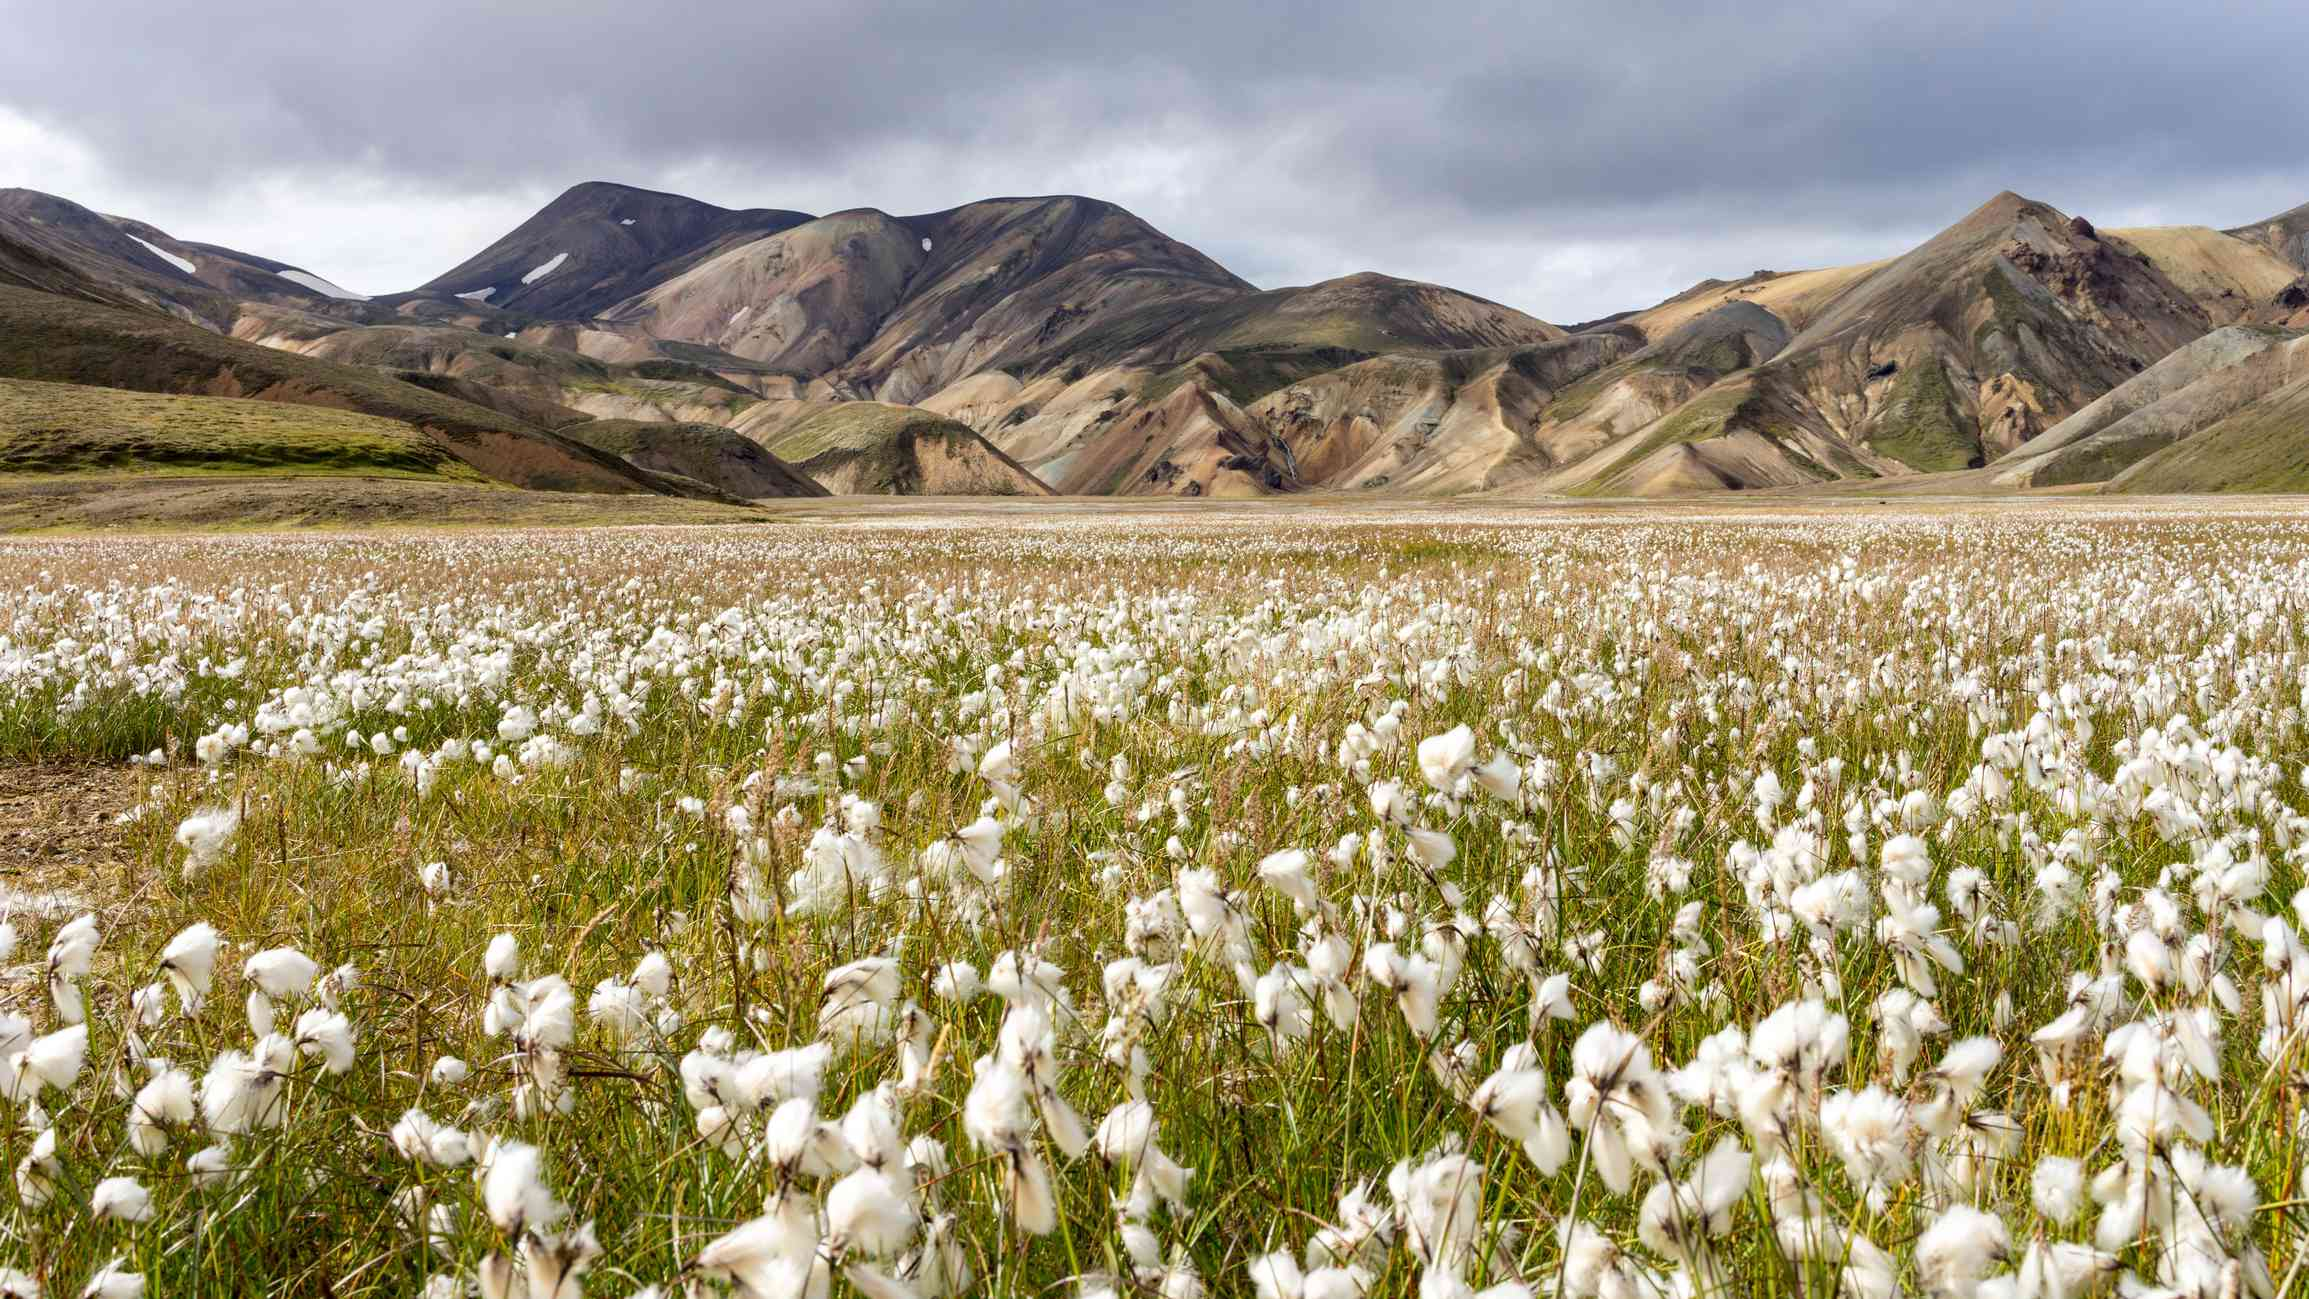 Cottongrass in Iceland